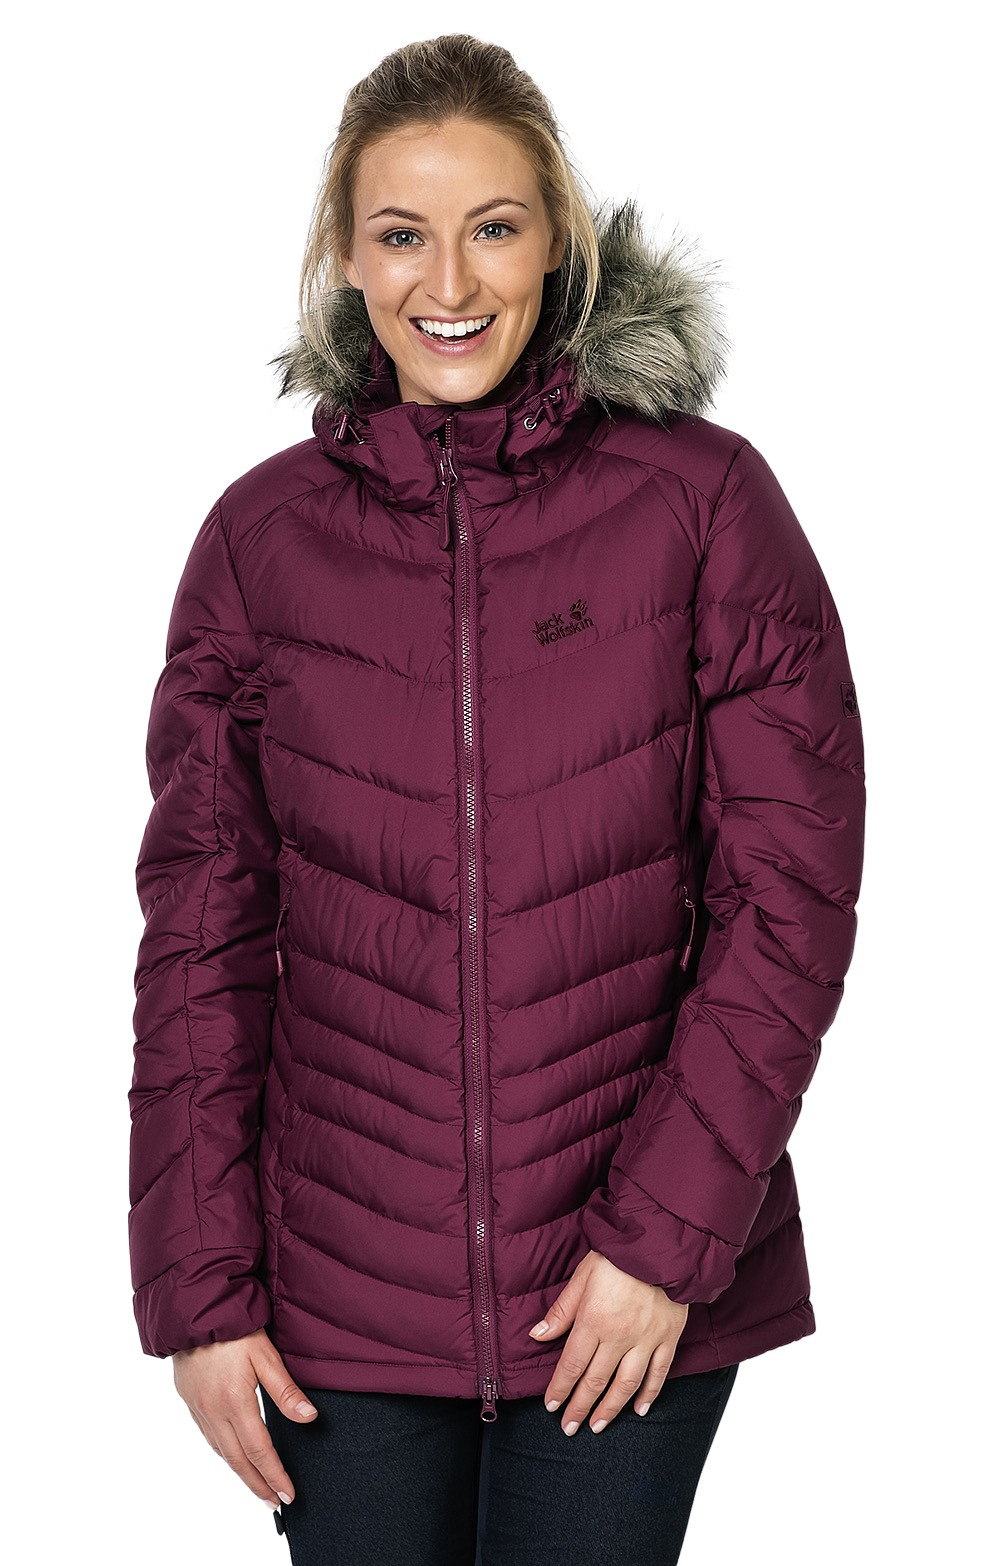 e9ca92fb88 Ladies Jack Wolfskin Selenium Bay Down Jacket | Ladies Down Jackets | House  Of Bruar